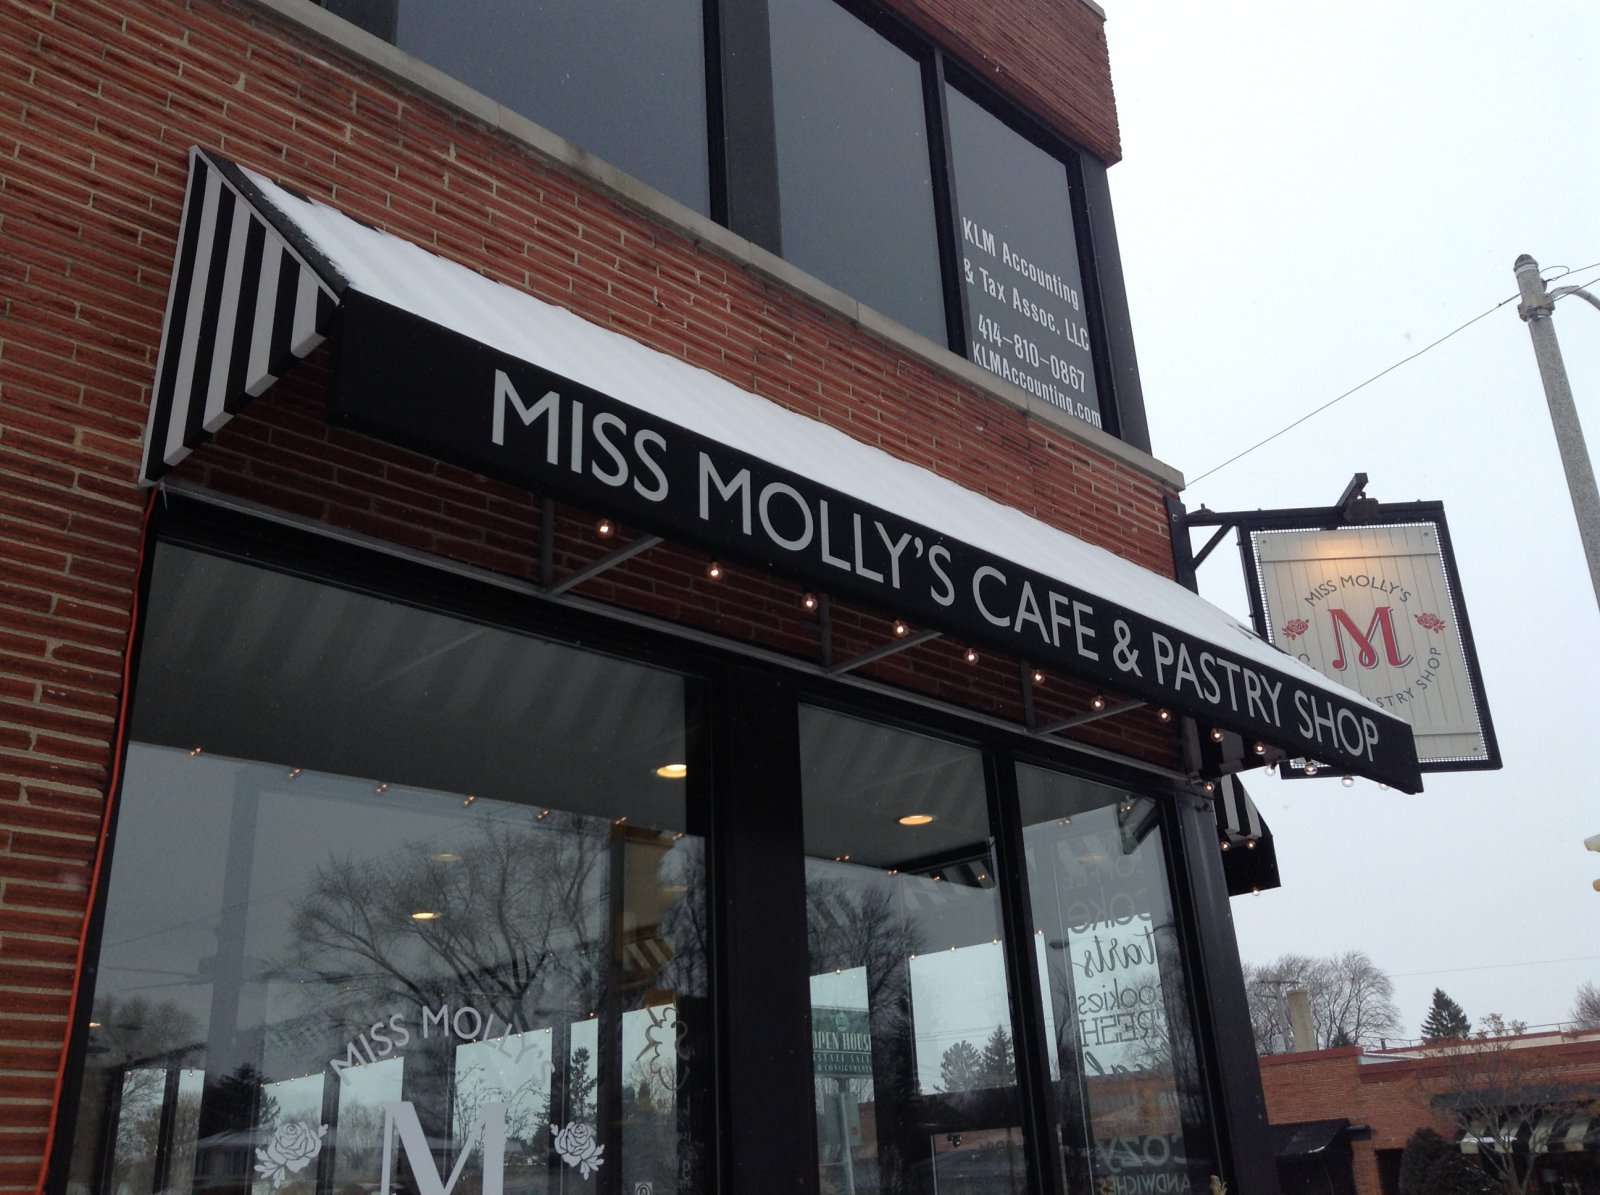 Miss Molly's Cafe & Pastry Shop